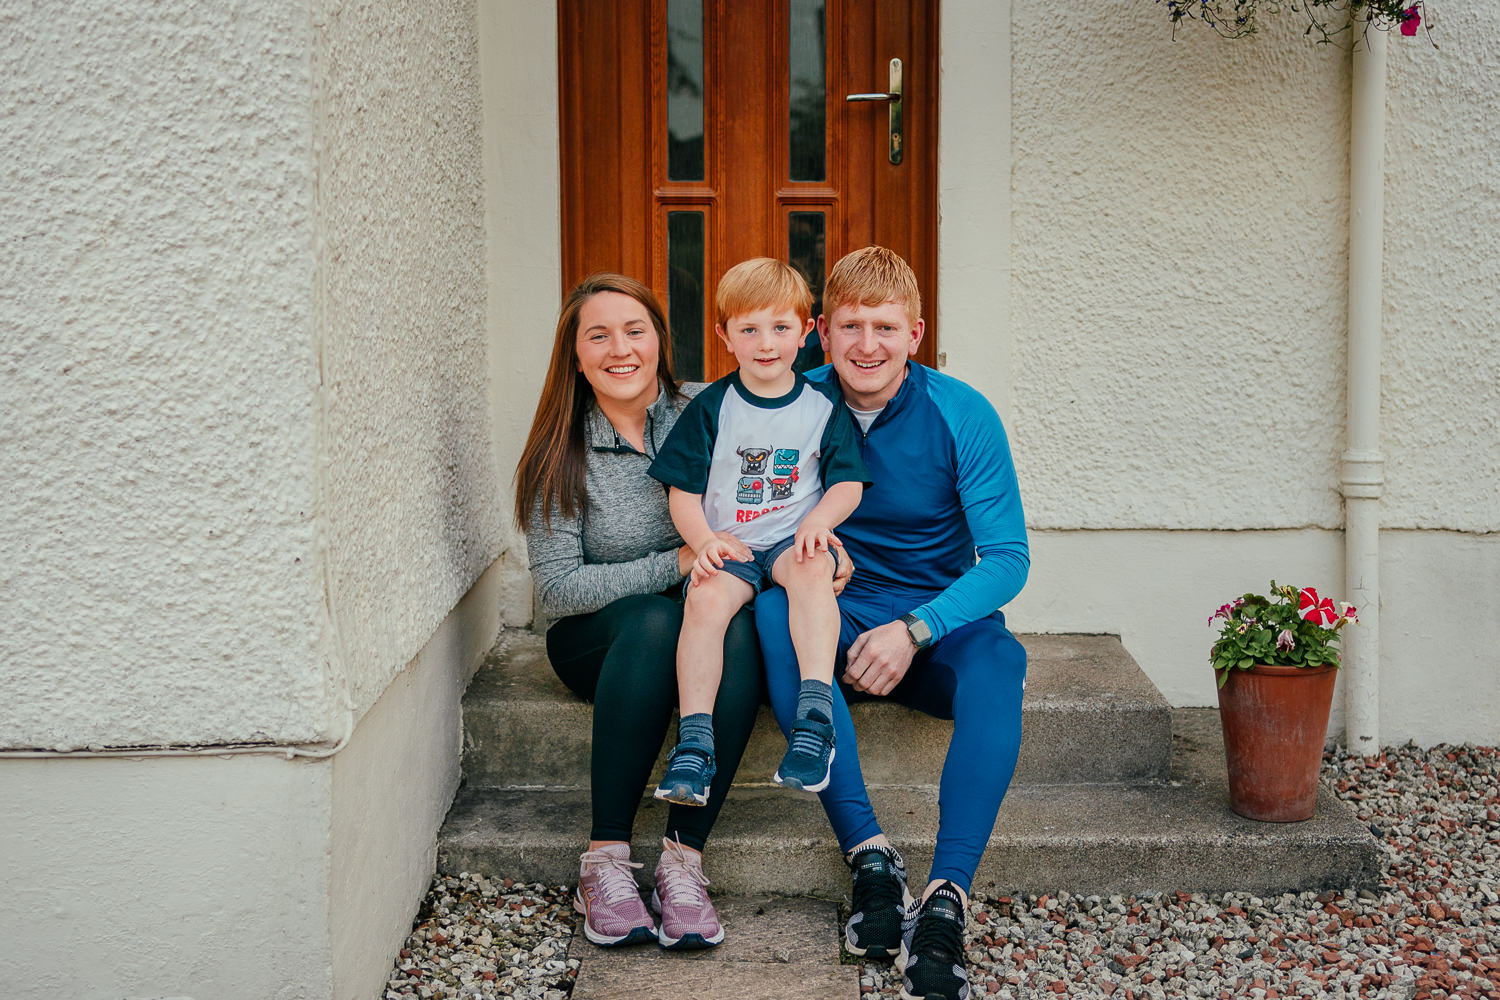 door portraits Glasgow family front door steps mum dad son